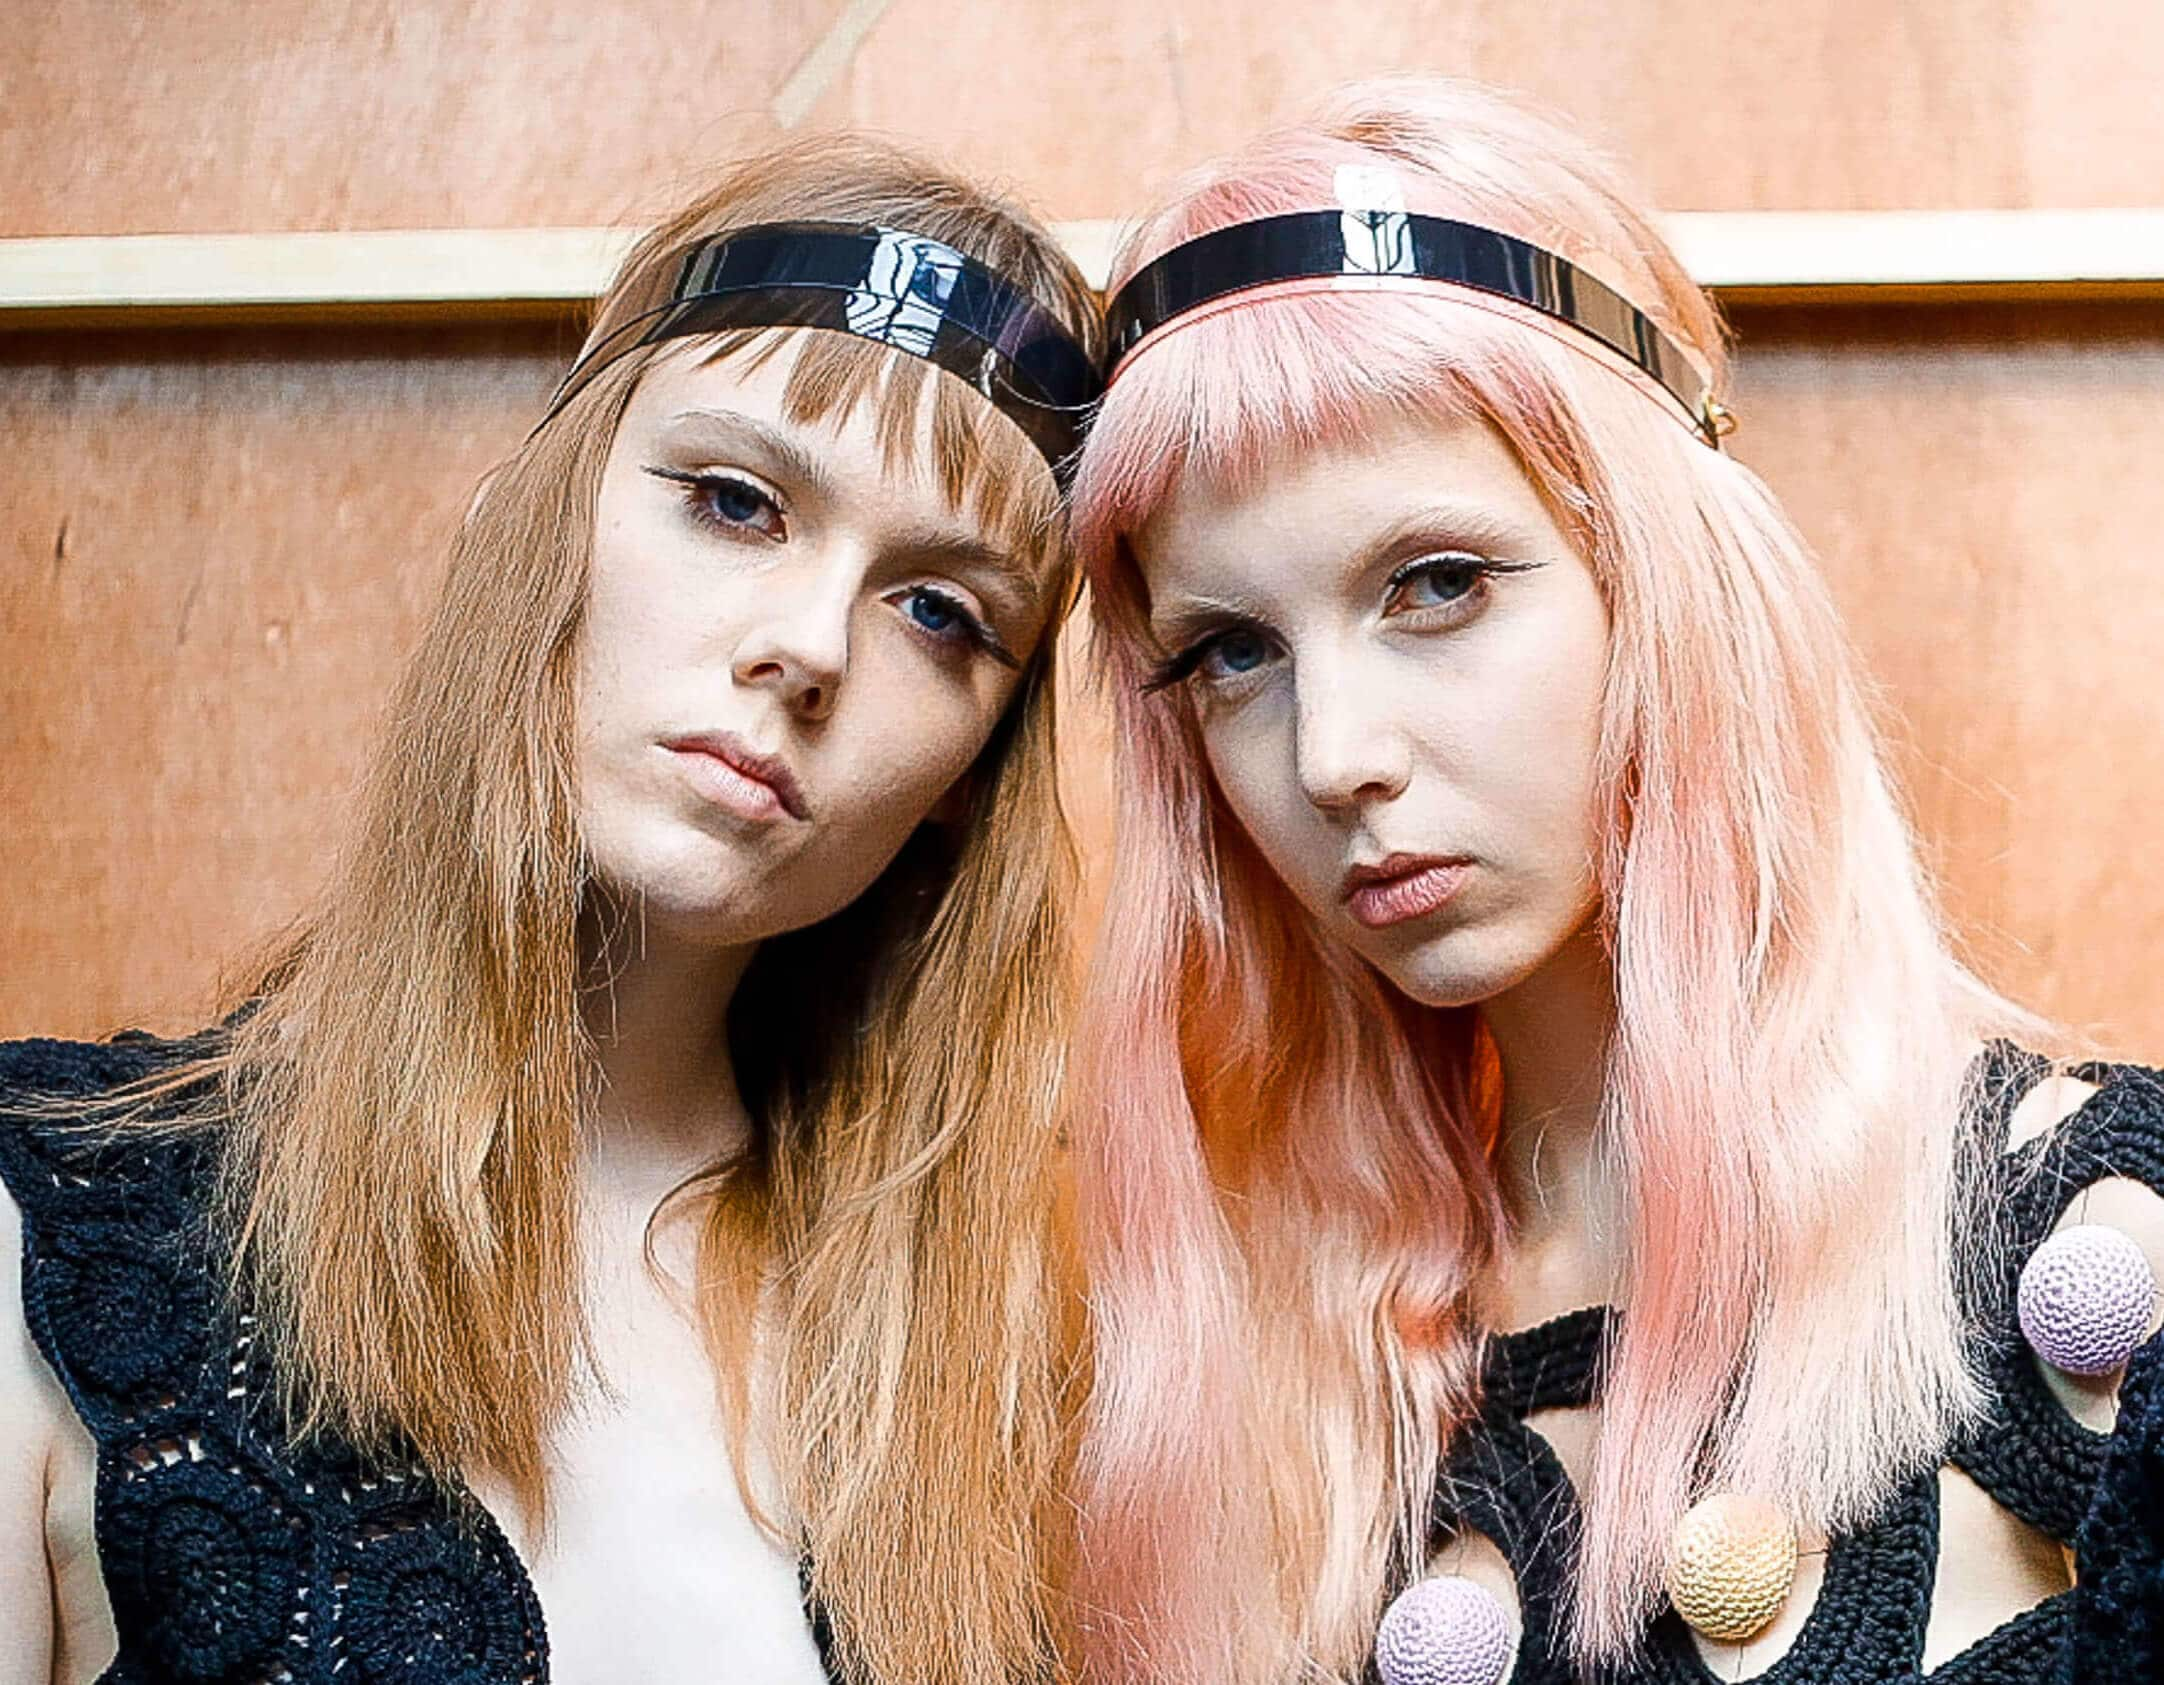 Silver shampoo: Backstage fashion week shot of two models, one with light brown hair and one with pink, both wearing black headbands.